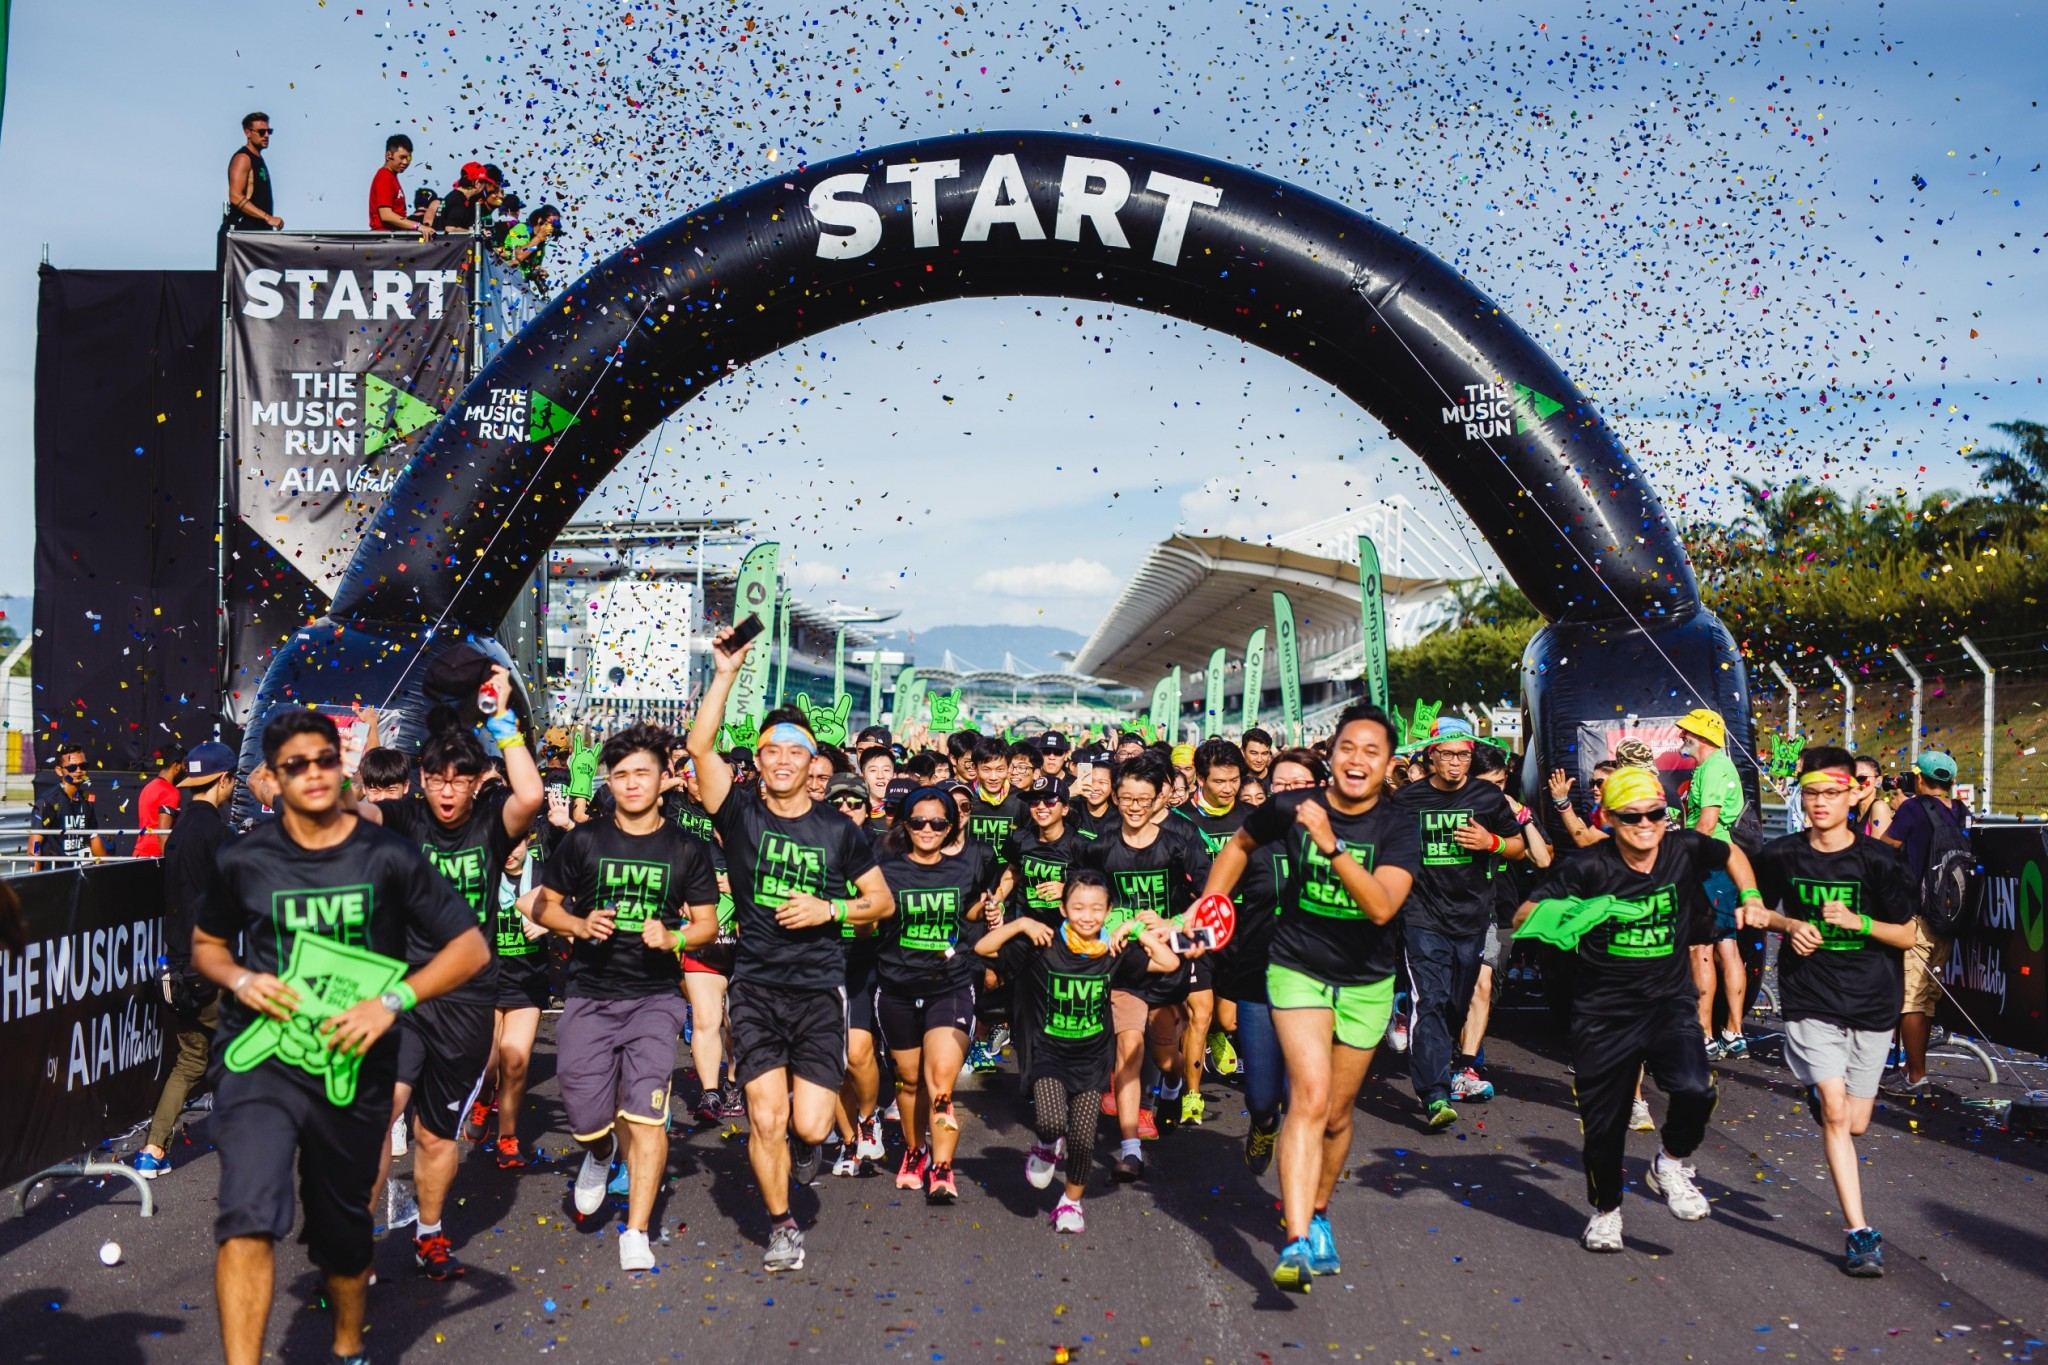 20000-enthusiastic-music-runners-flagged-off-at-the-sepang-international-circuit